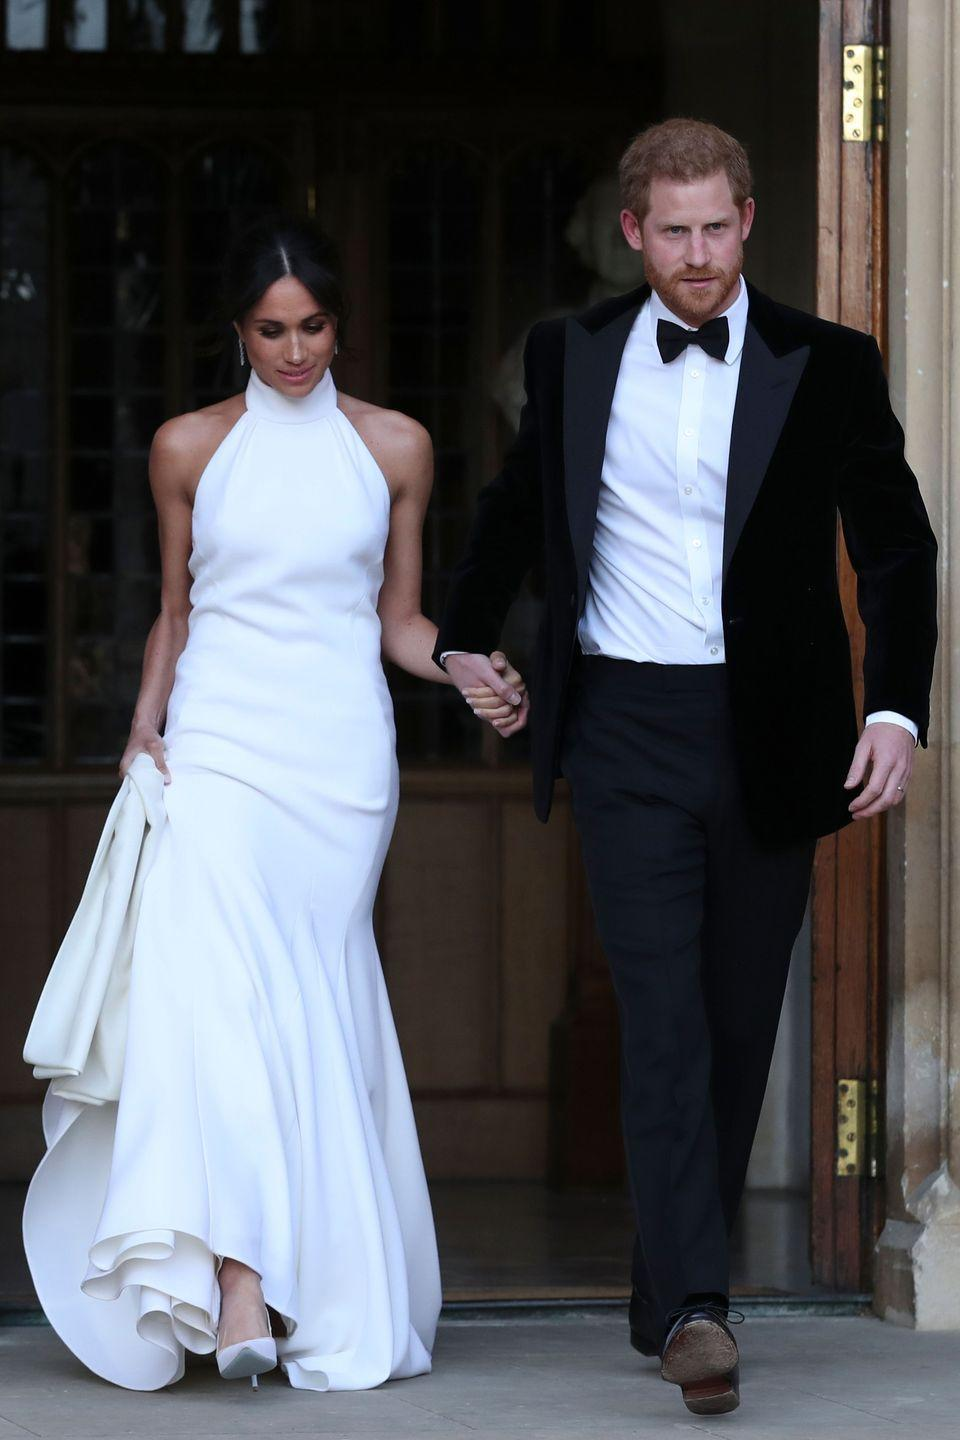 <p>As the pair left Windsor Castle to attend their evening wedding reception at Frogmore House, the newlyweds held onto each other's hands tightly, hours after marrying in front of 600 family and friends on 19 May 2018. </p>